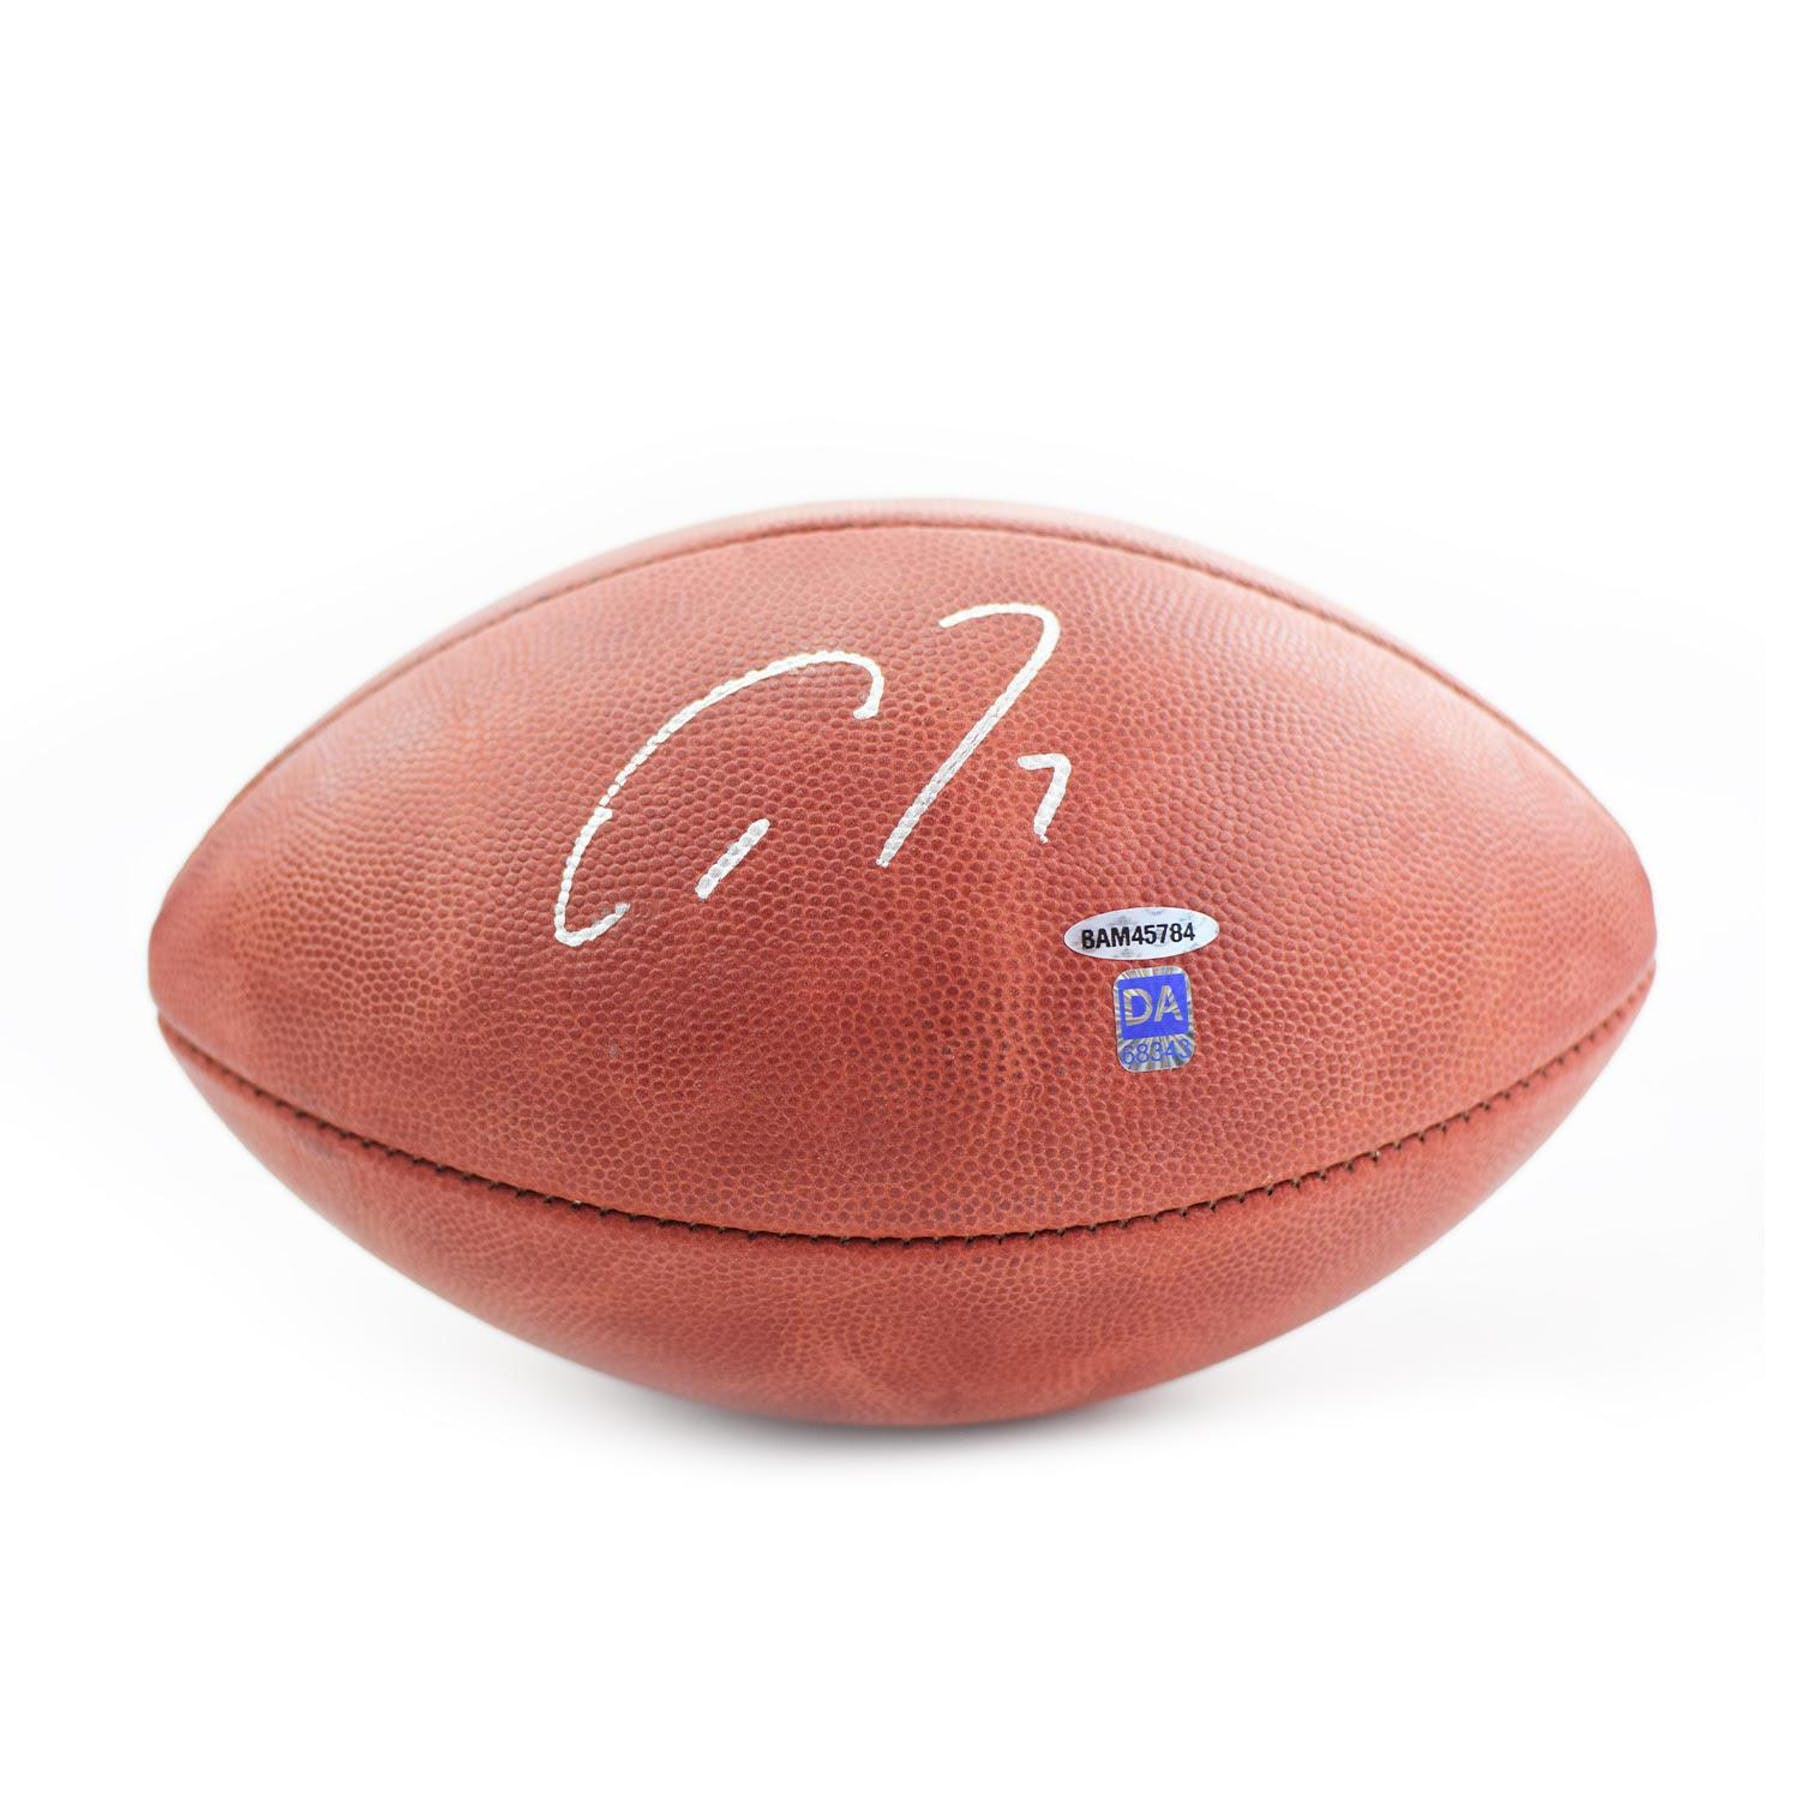 reputable site 6b2bf 51cea Allen Robinson Autographed Chicago Bears DUKE NFL Football (DACW COA)